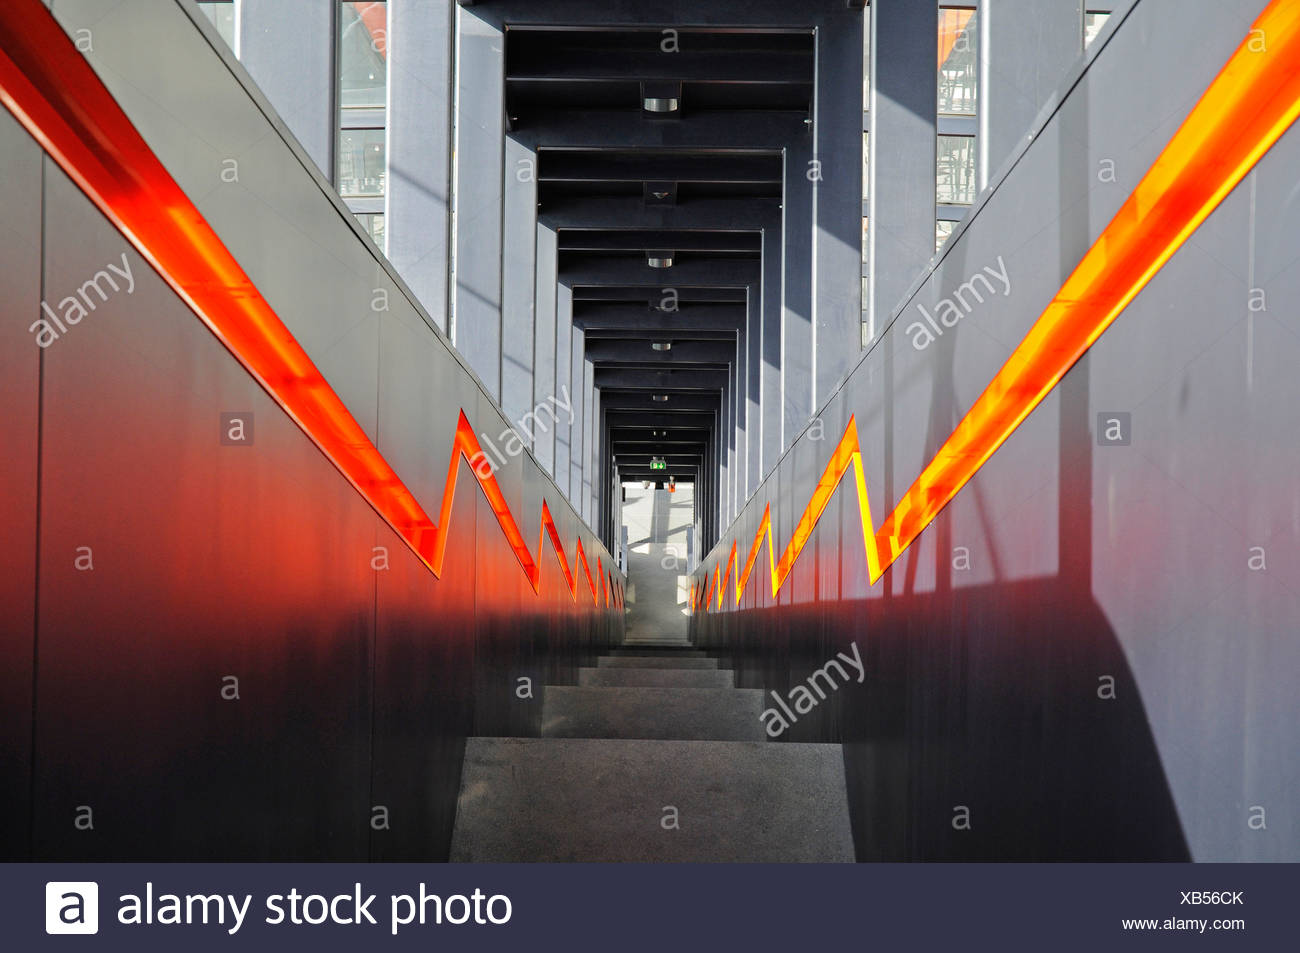 Steep stairs, steps, escalator, Zeche Zollverein, Zollverein Coal Mine Industrial Complex, Essen, North Rhine-Westphalia - Stock Image